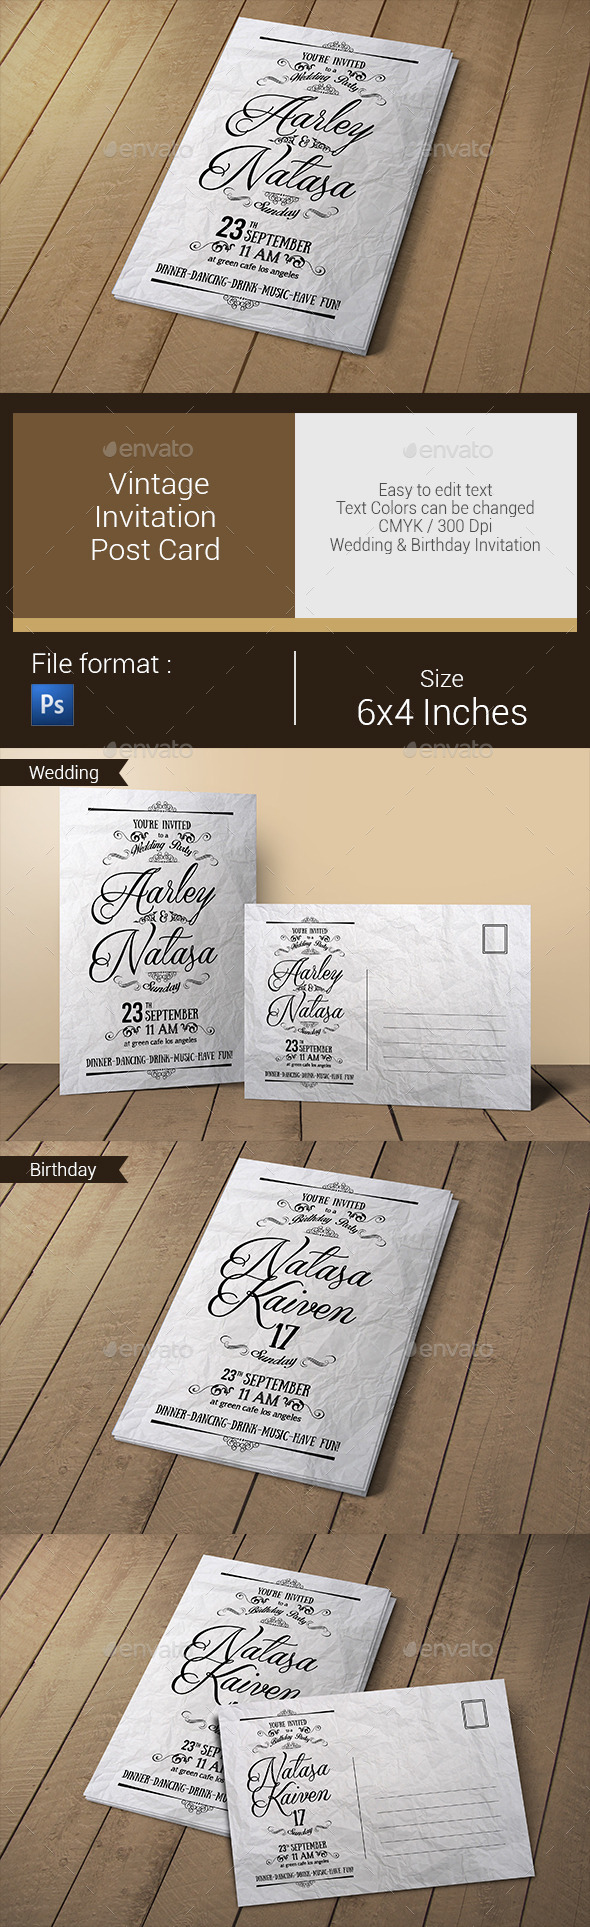 GraphicRiver Vintage Invitation & Post Card 10783764